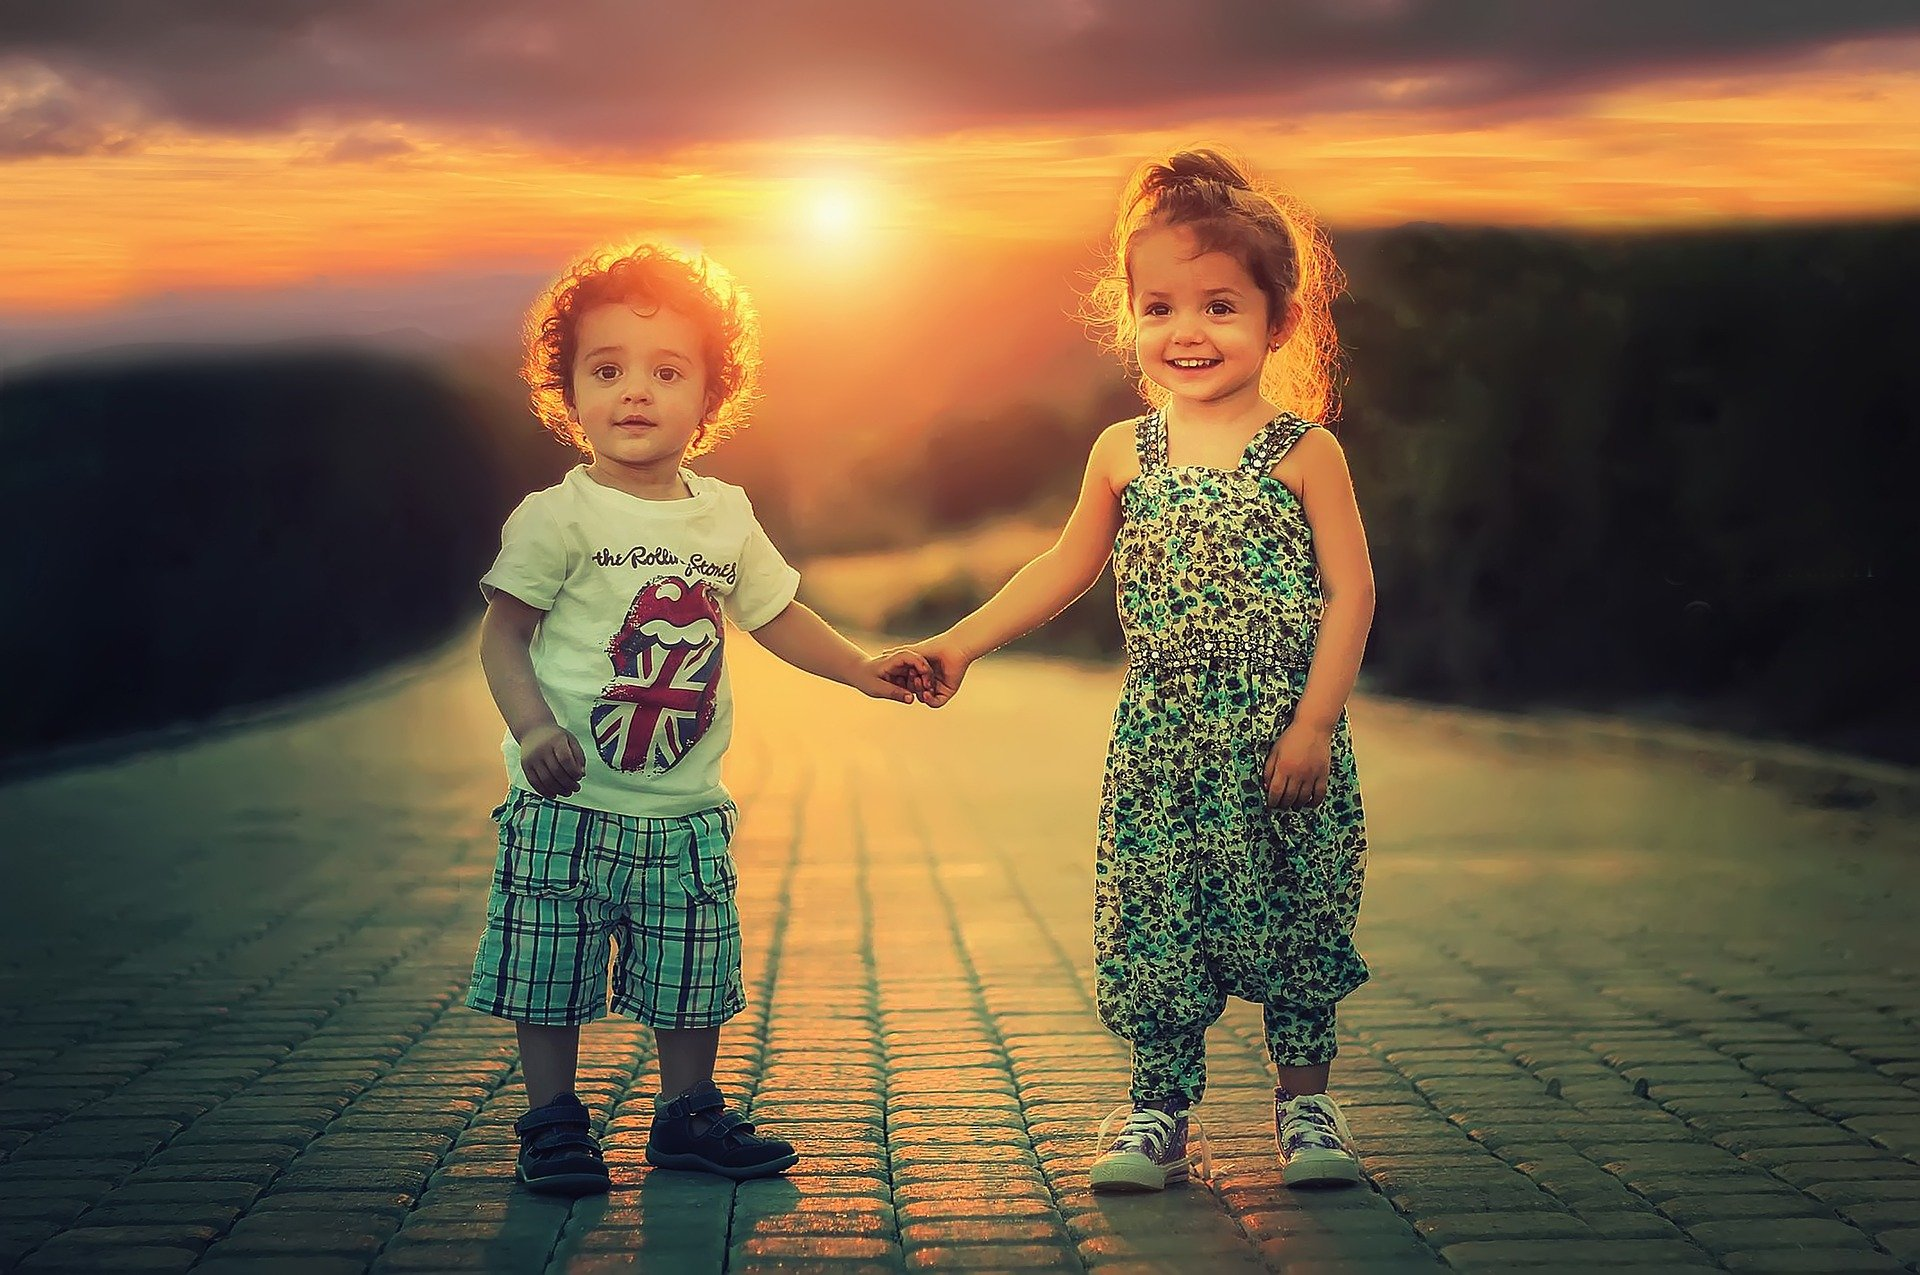 2 children holding hands in the sunset